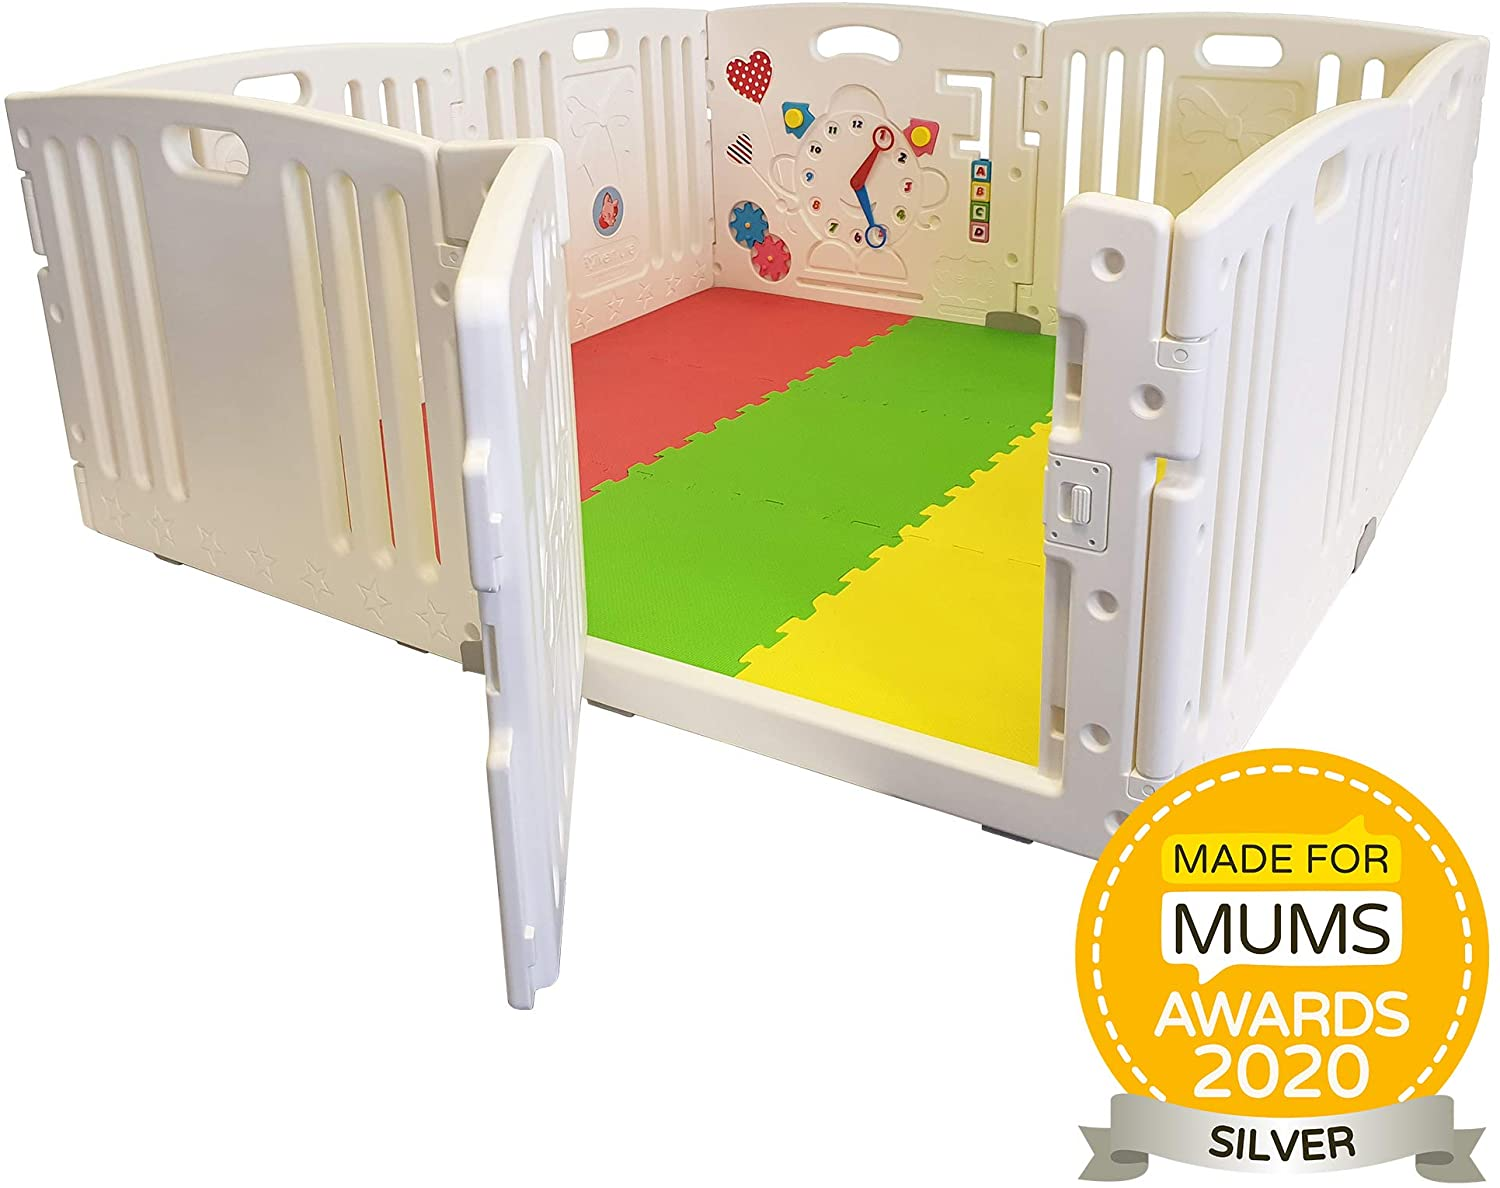 NEW Venture ALL STARS Baby Playpen | 8 Pcs Including Fun Activity Panel | Fitted Floor Mats And Bright Coloured Play Balls | Strong And Duable - Made From High Quality Non-Toxic Materials